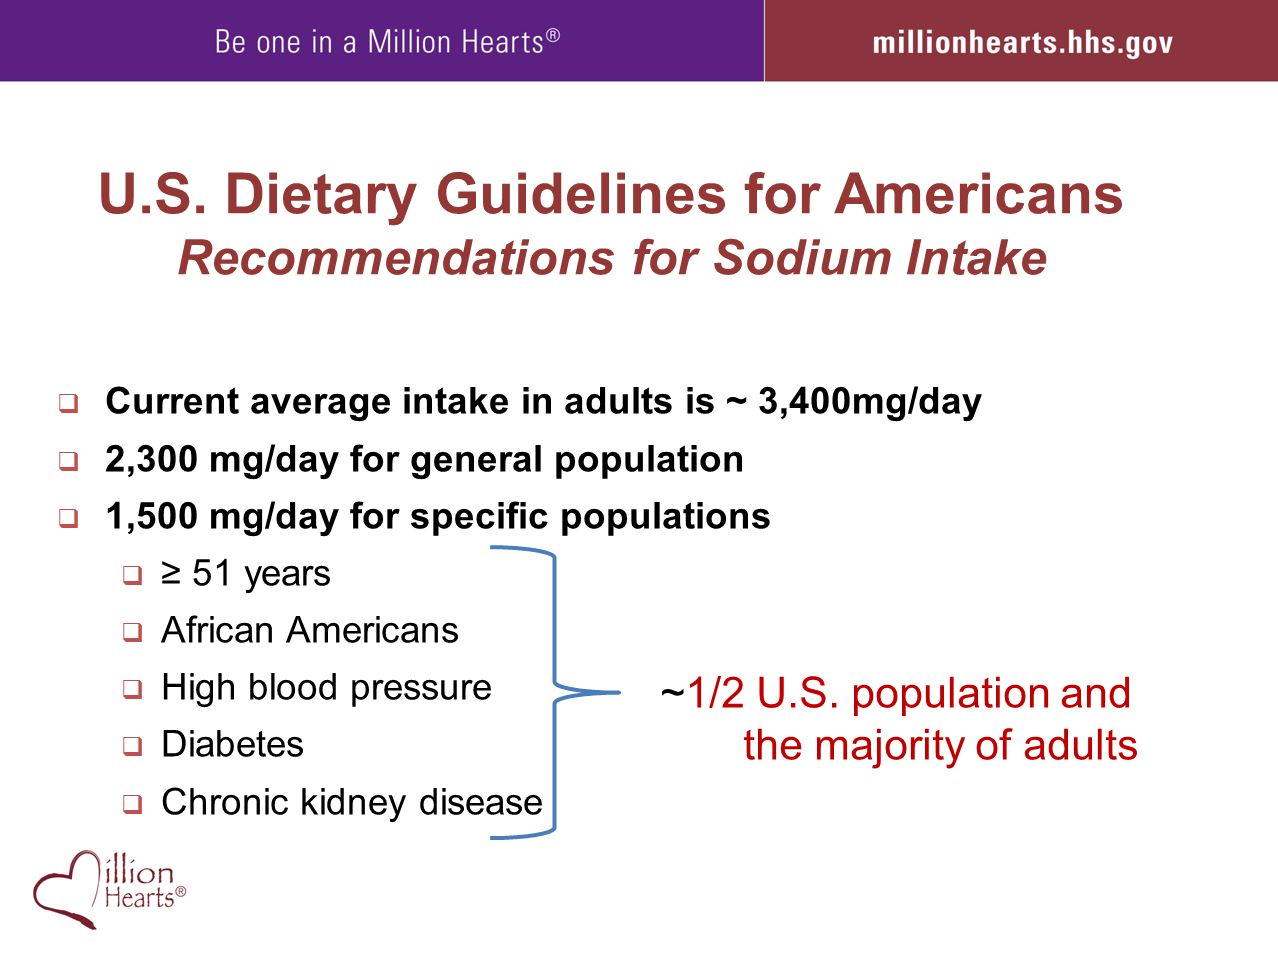 U.S. Dietary Guidelines for Americans Recommendations for Sodium Intake